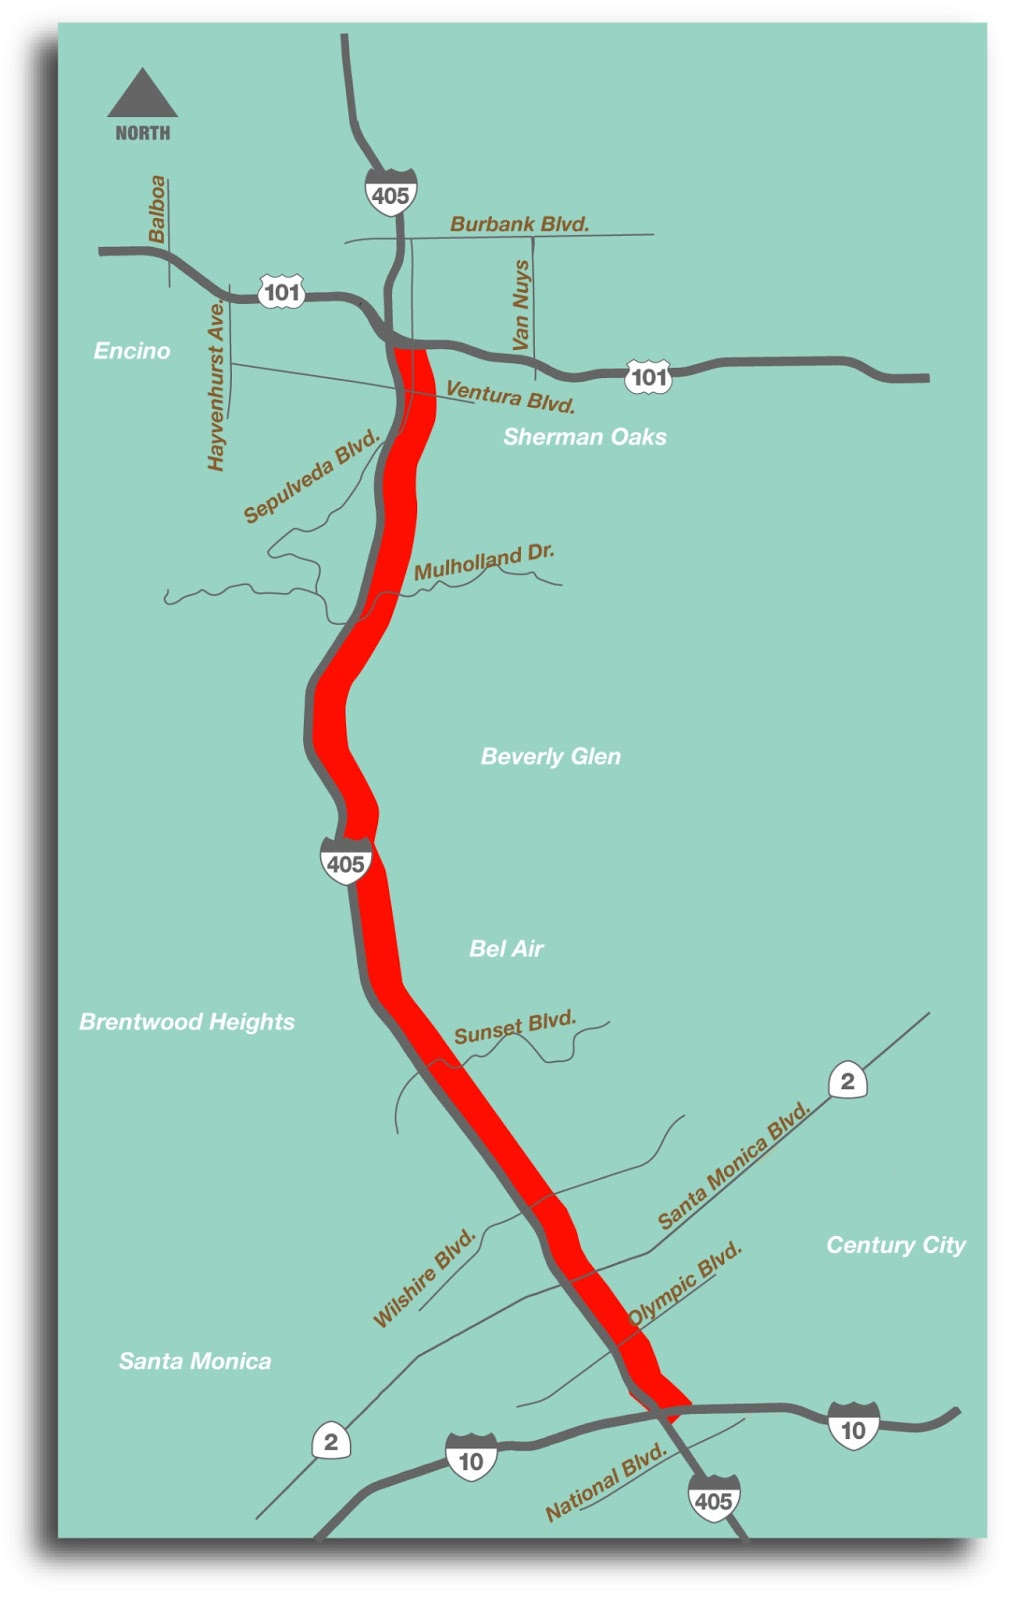 Southbound I405 Full Freeway Closure set for March 9 Caltrans